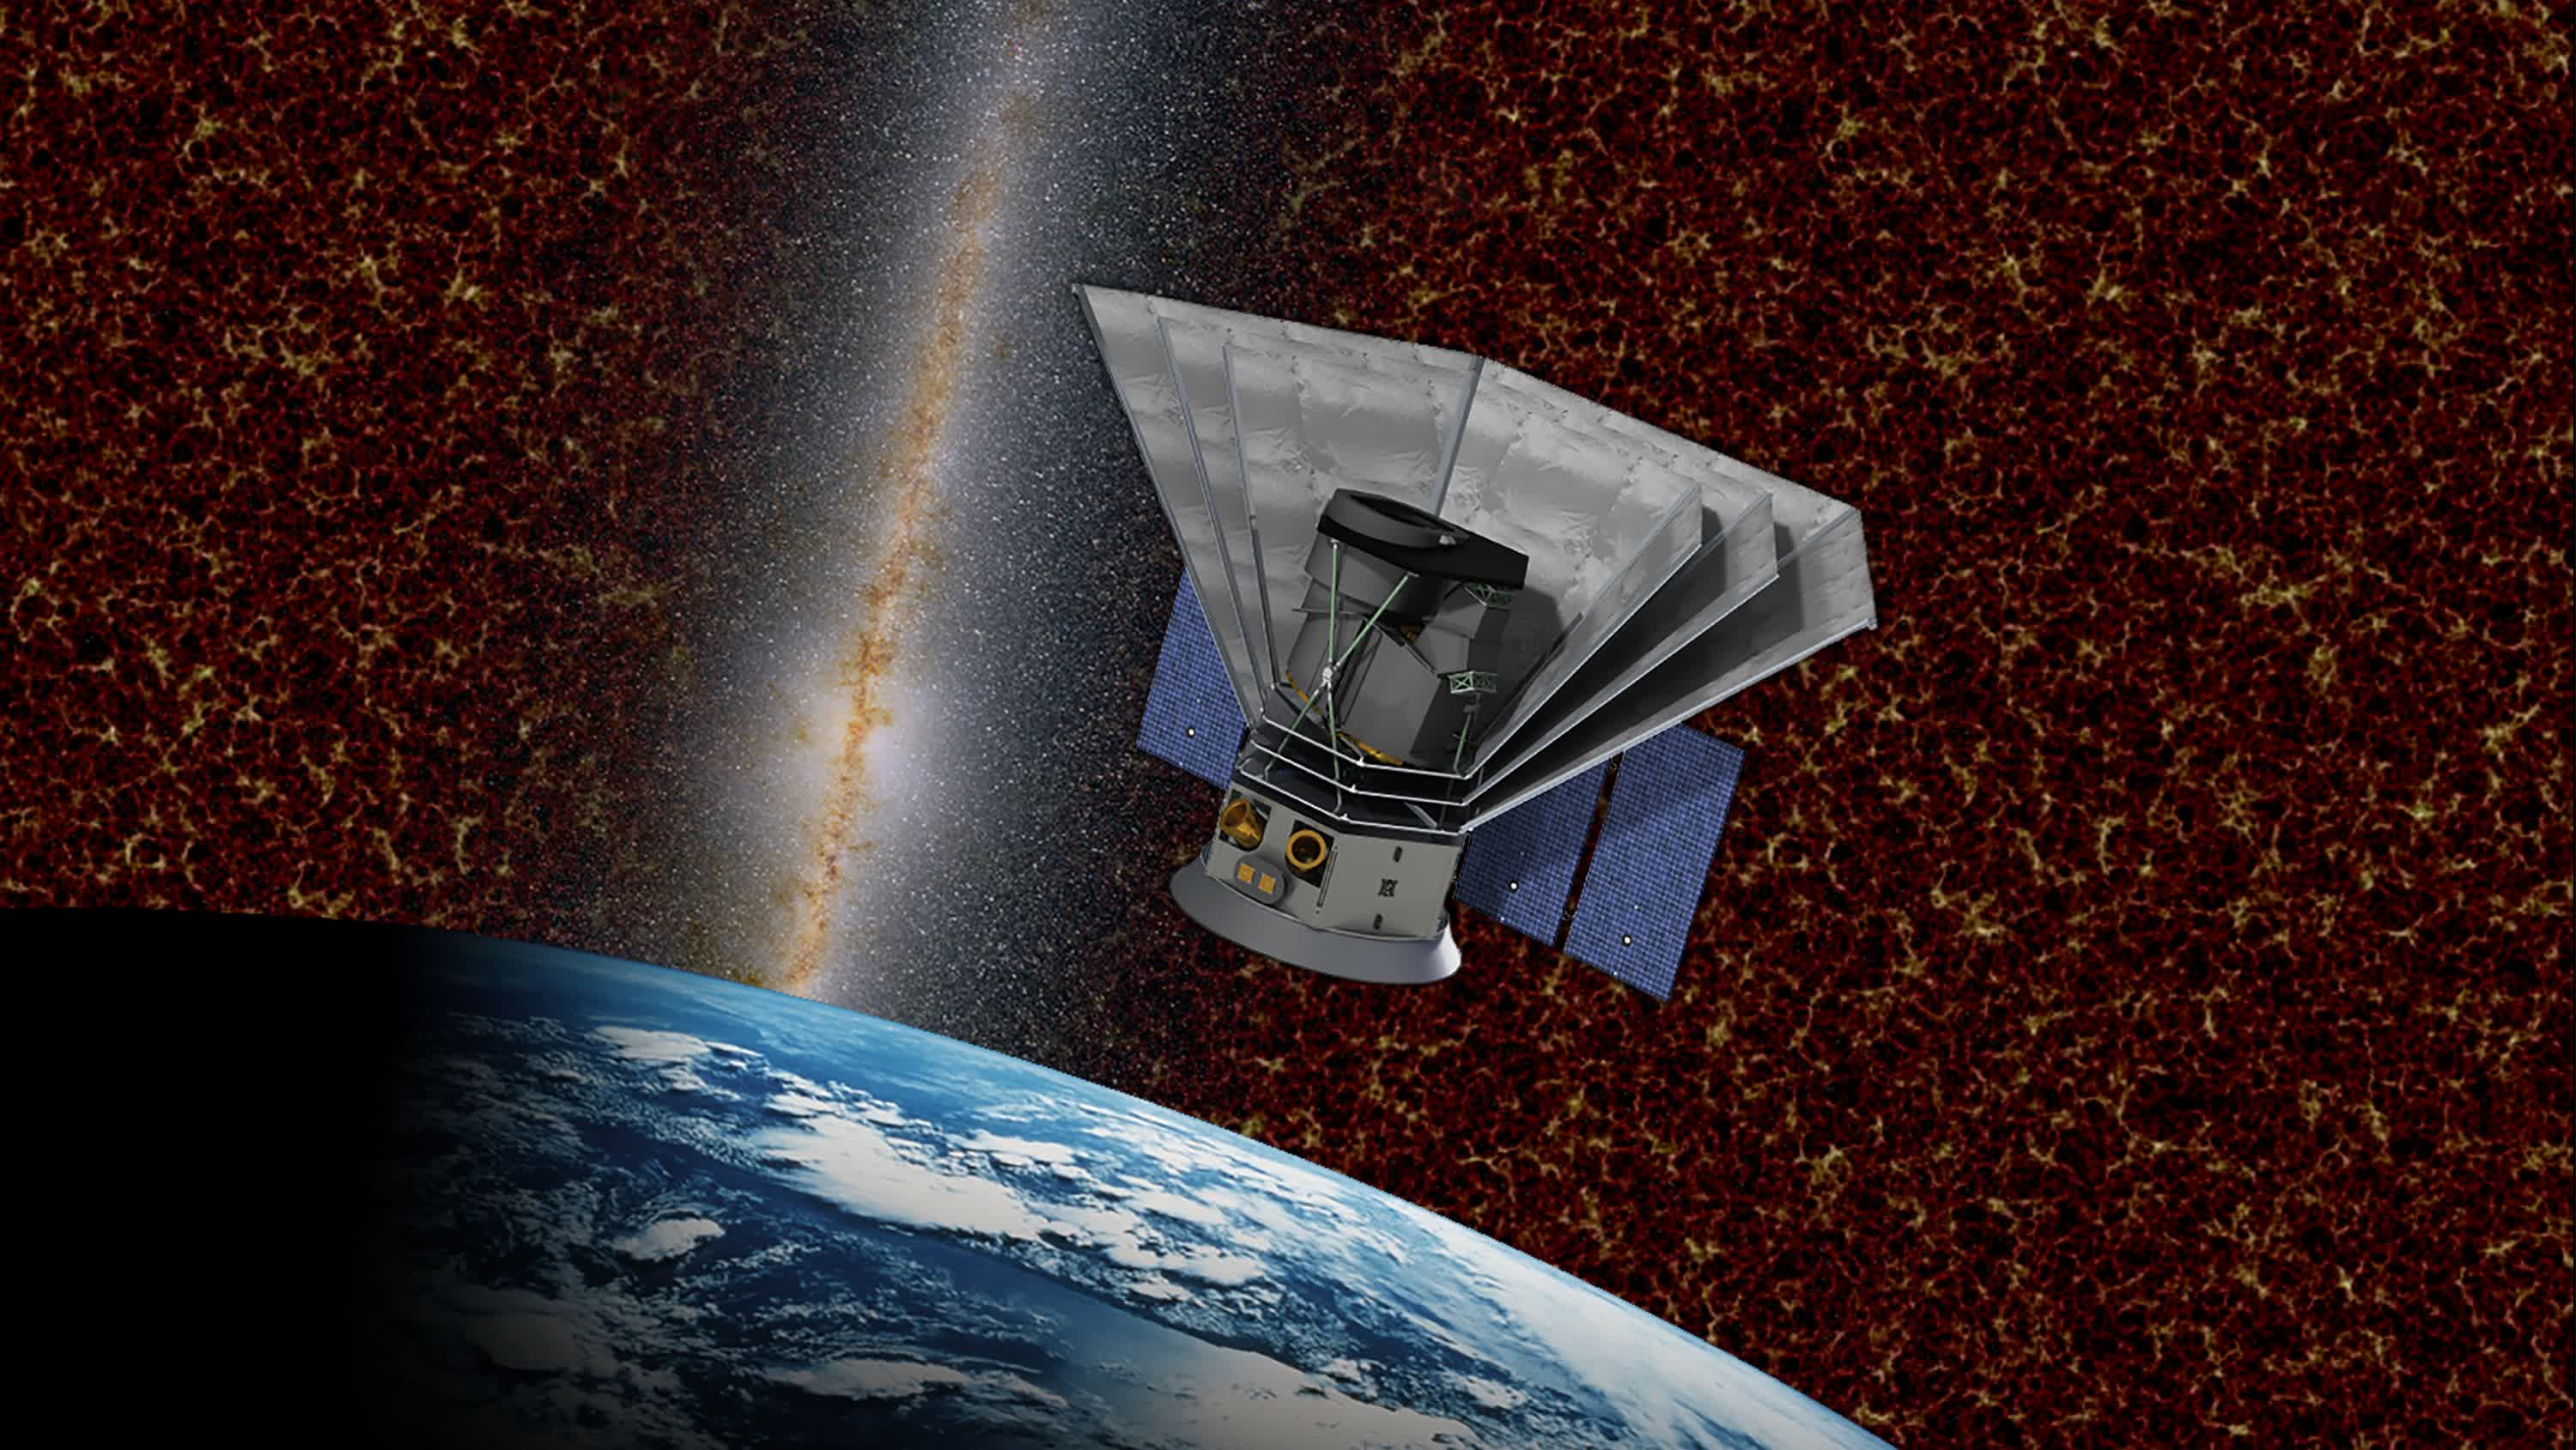 NASA's SPHEREx space telescope gets the green light to continue development